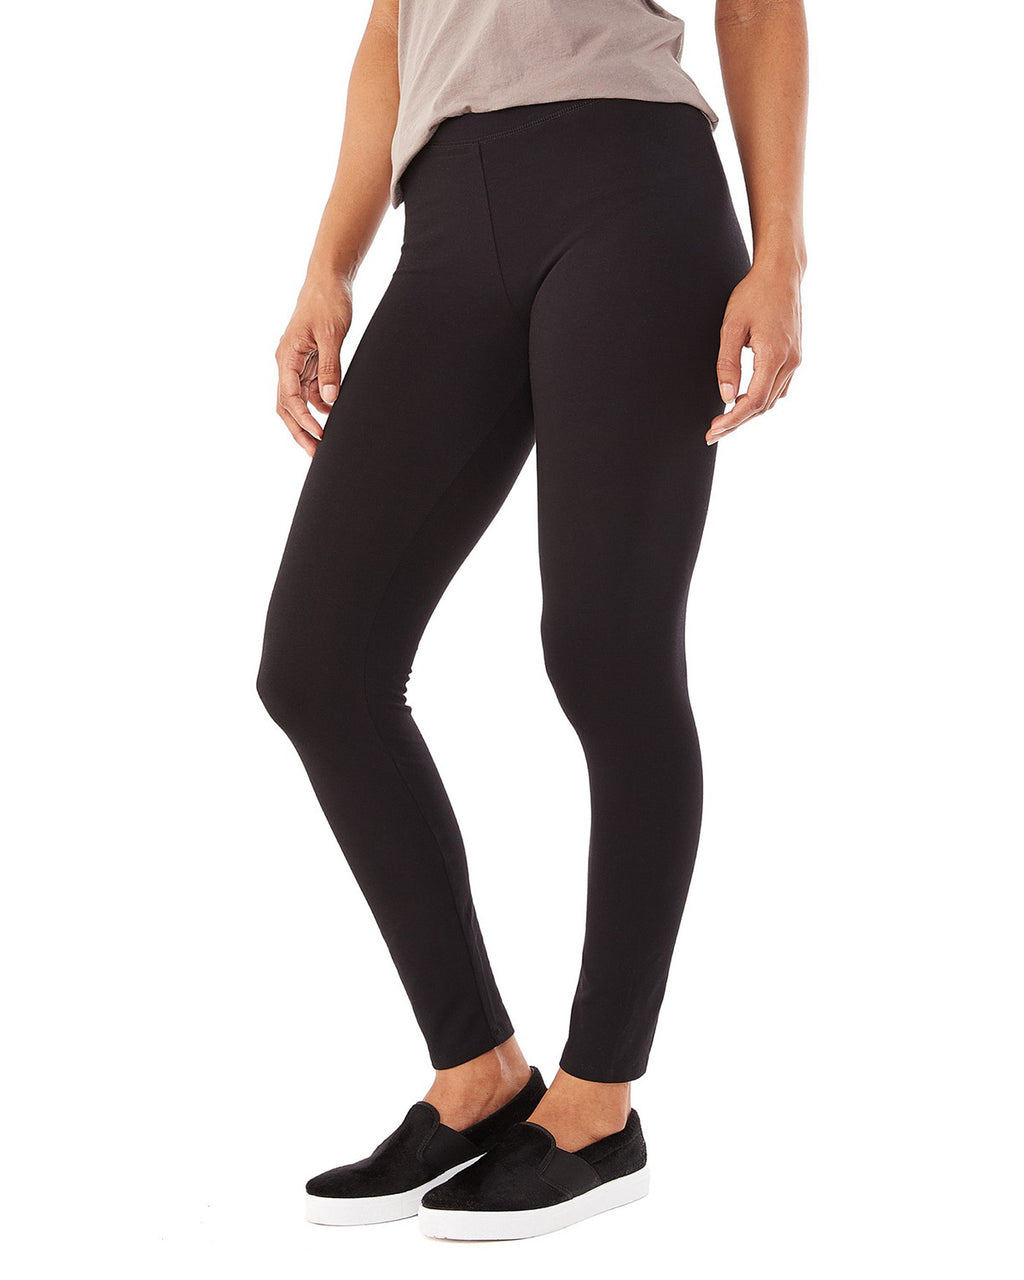 Women's Kotton/Spandex Super Soft Leggings